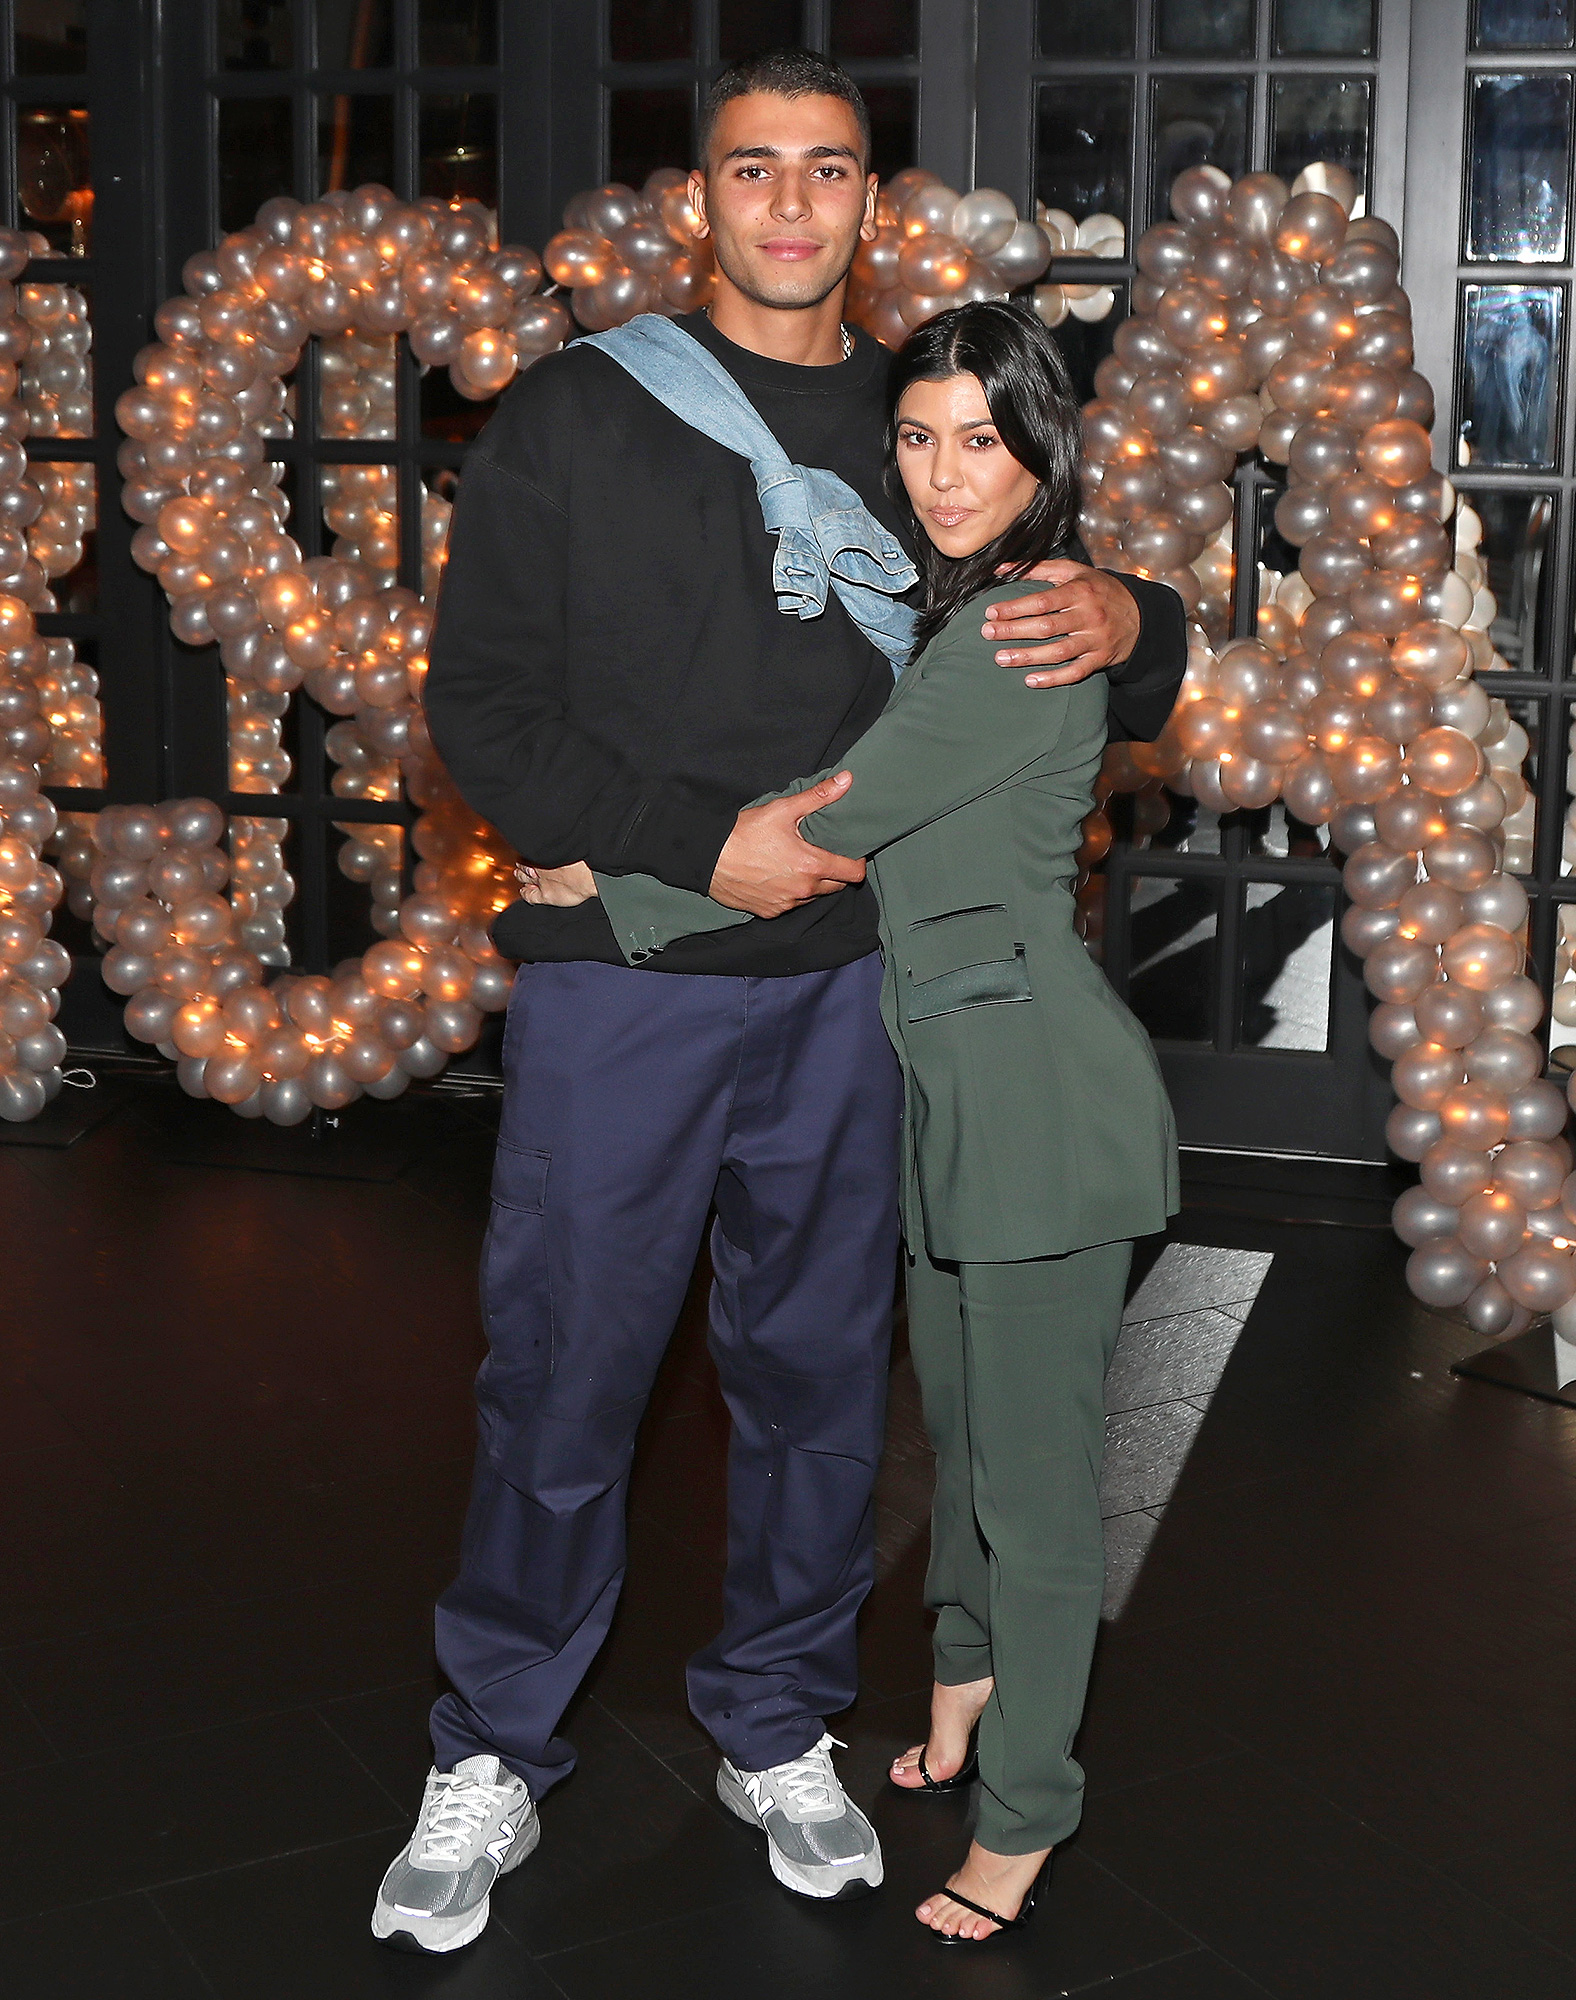 Andrea Thompson Hot kylie jenner shows off post-baby body at tristan thompson's